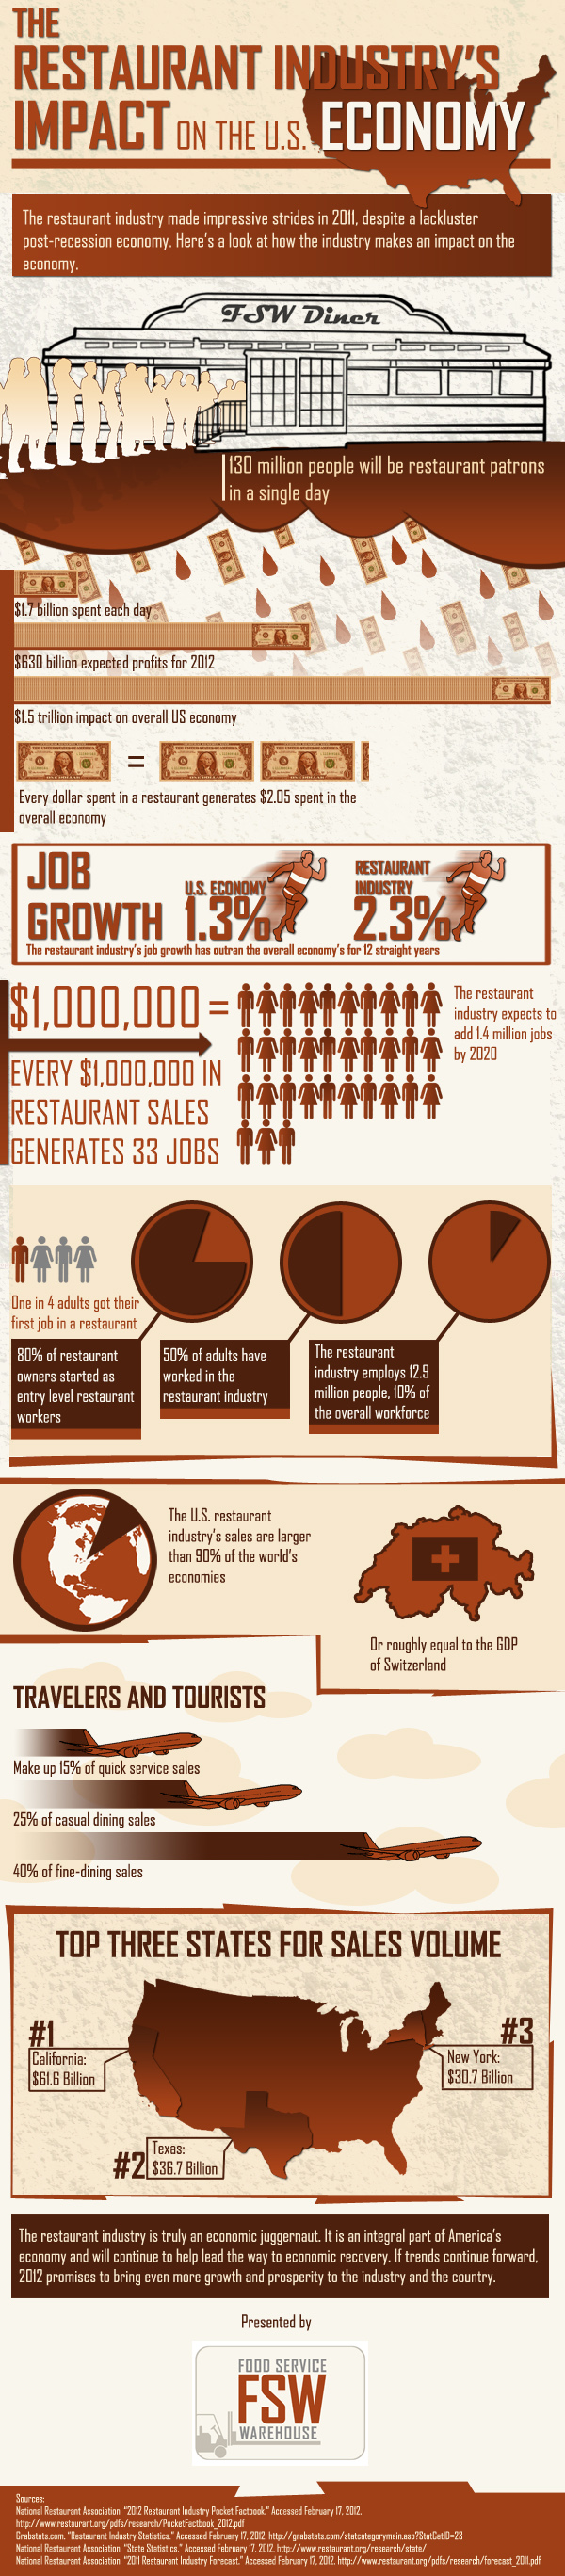 Restaurant Industry Economic Impact